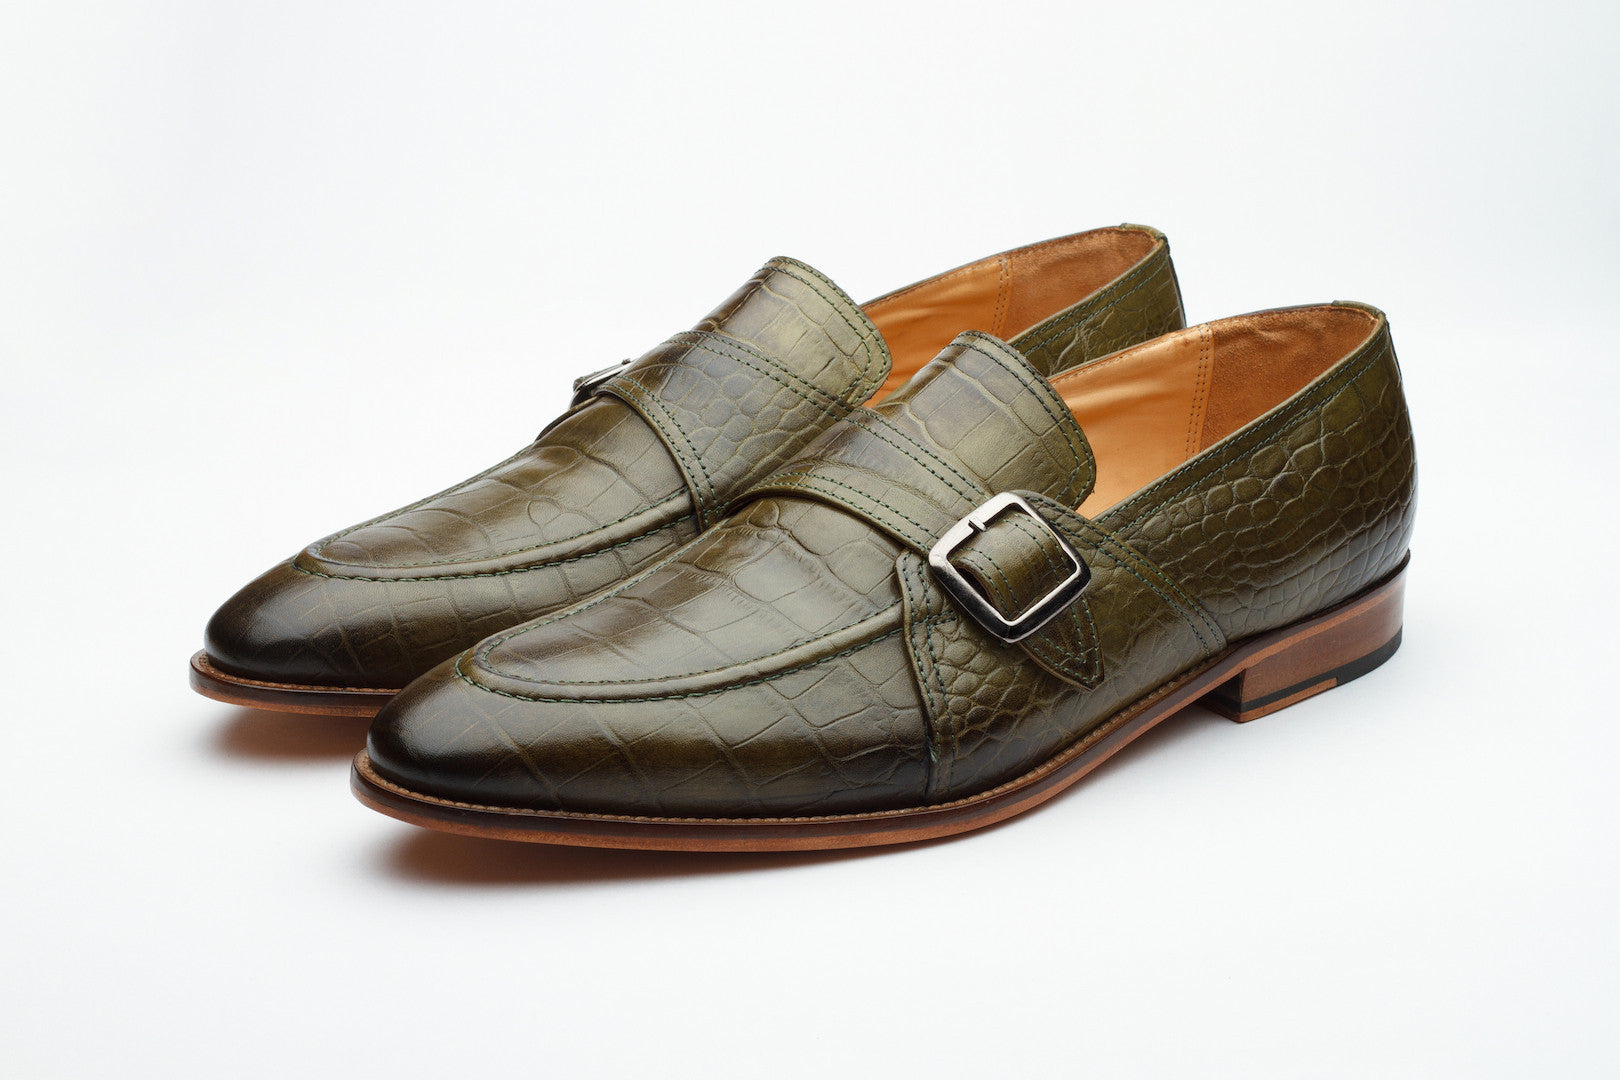 Loafers - Crocodile Print Monk Style Loafer - Olive